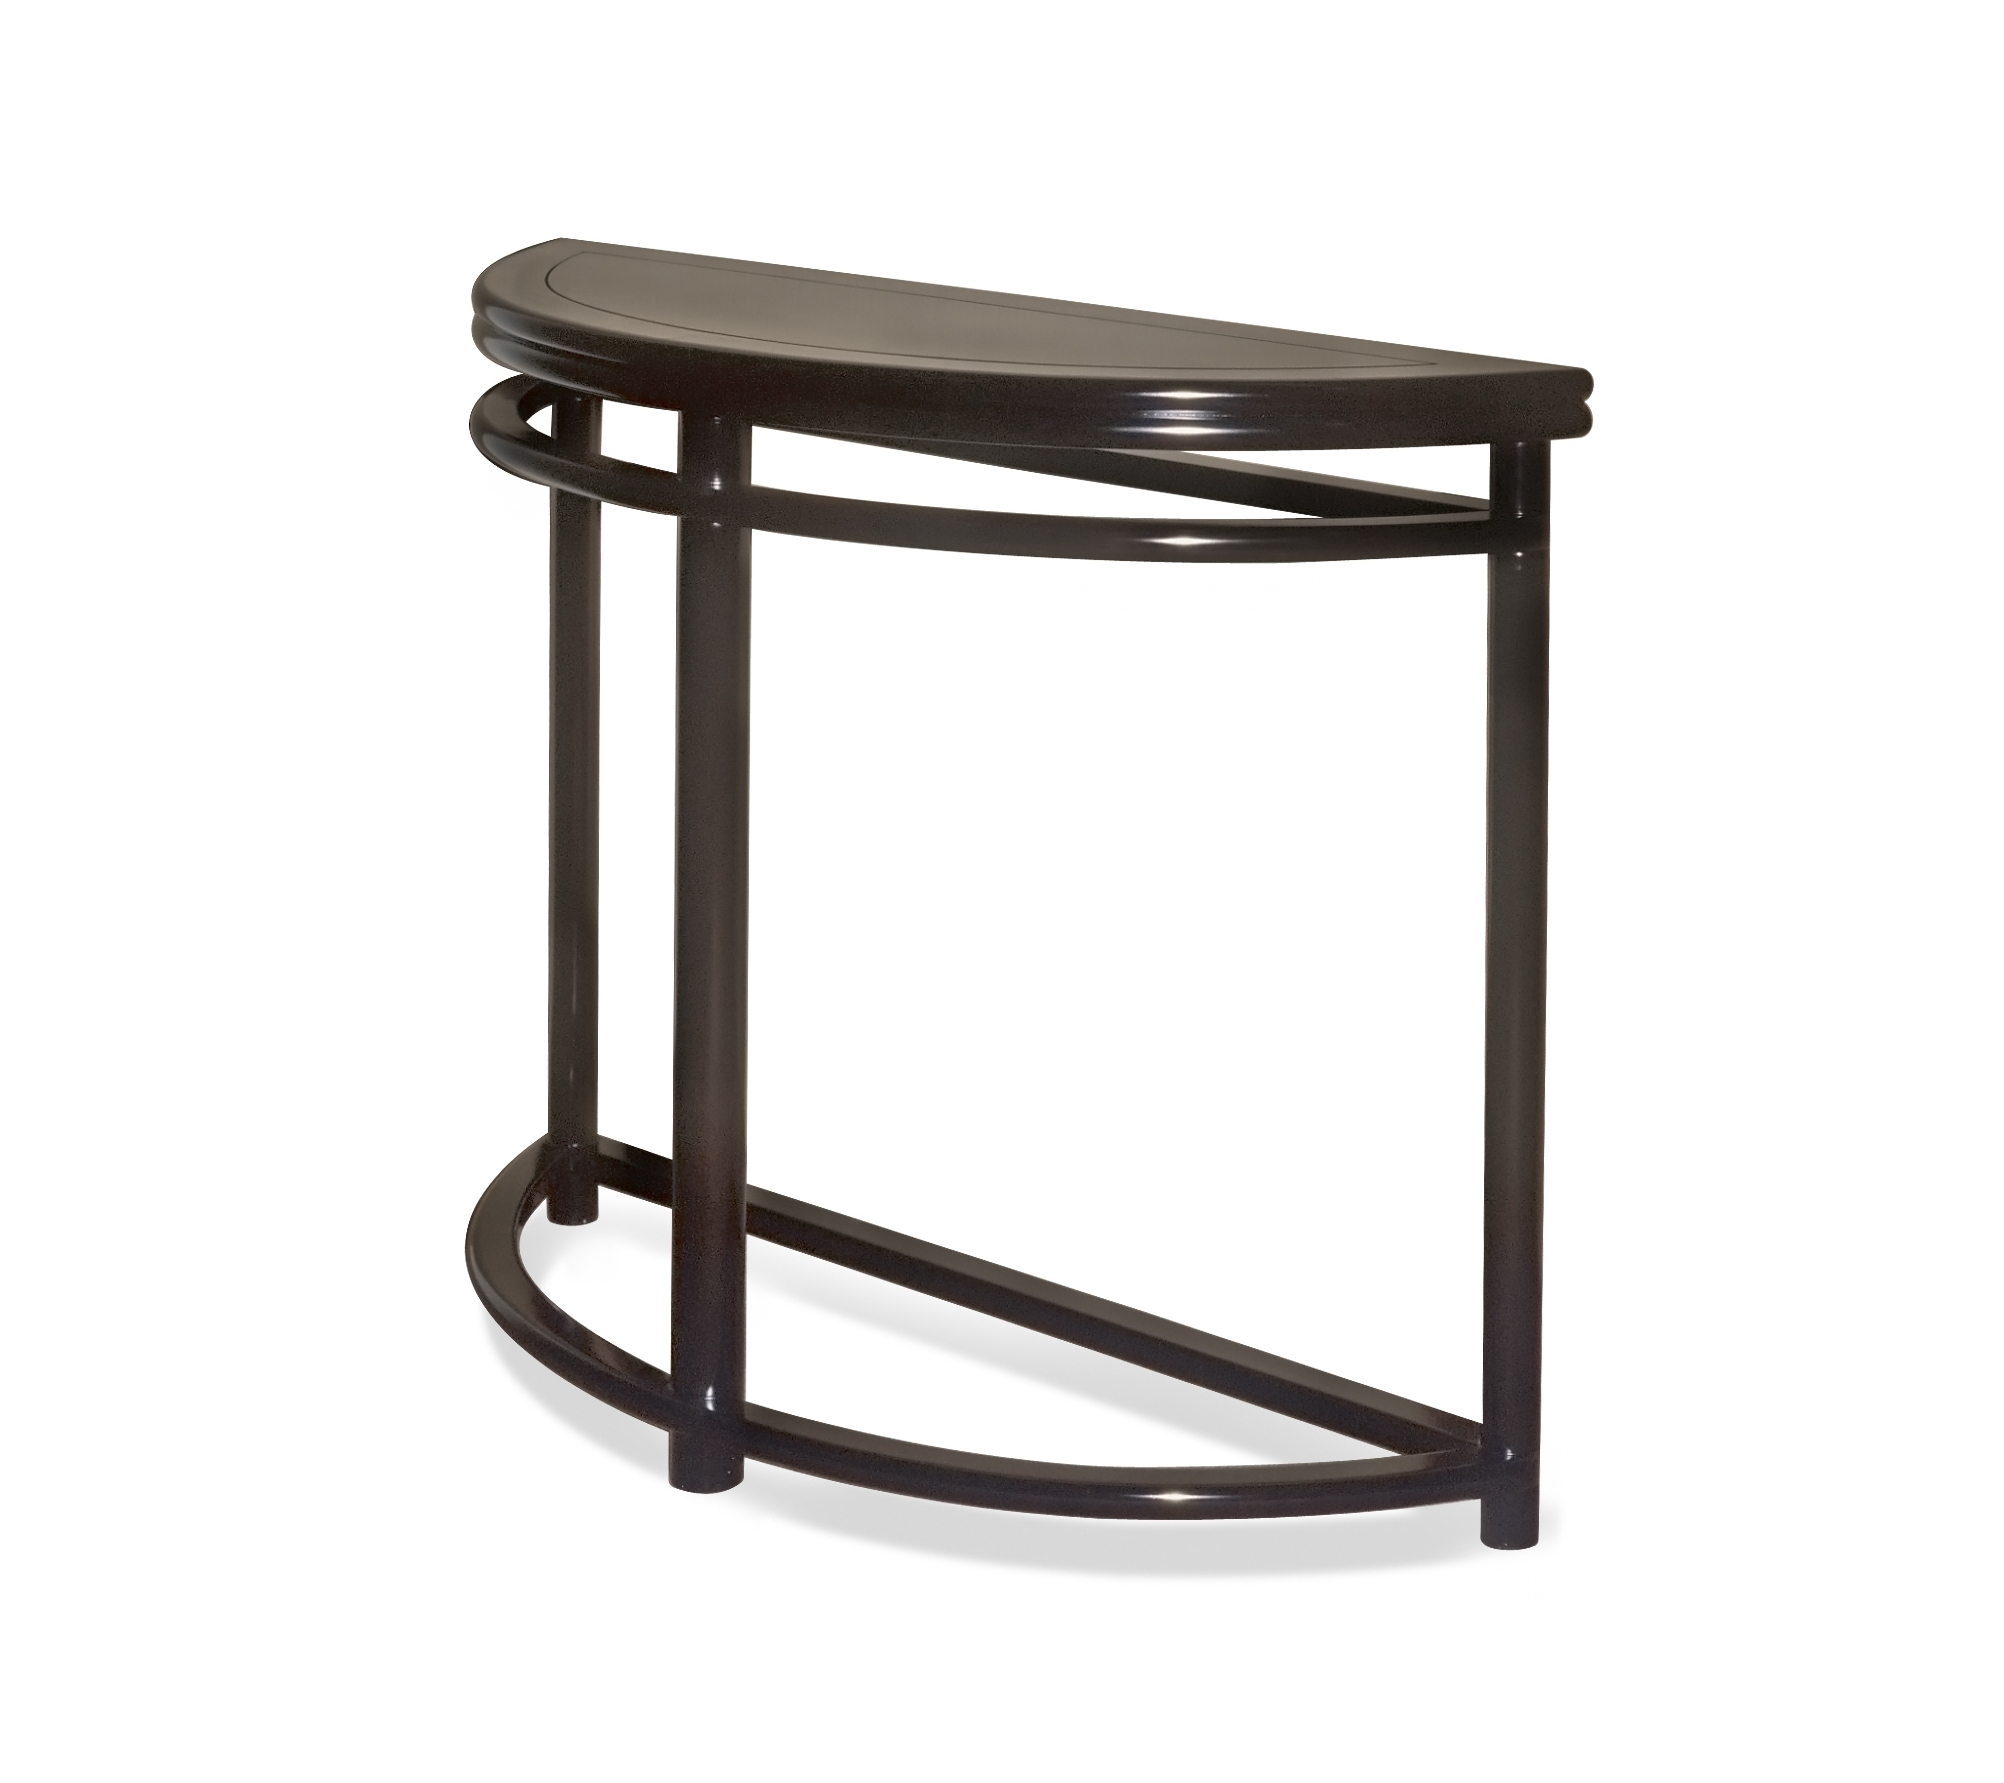 ....Ming Style Chinese furniture : Side Table..明式中式家具: 条桌....